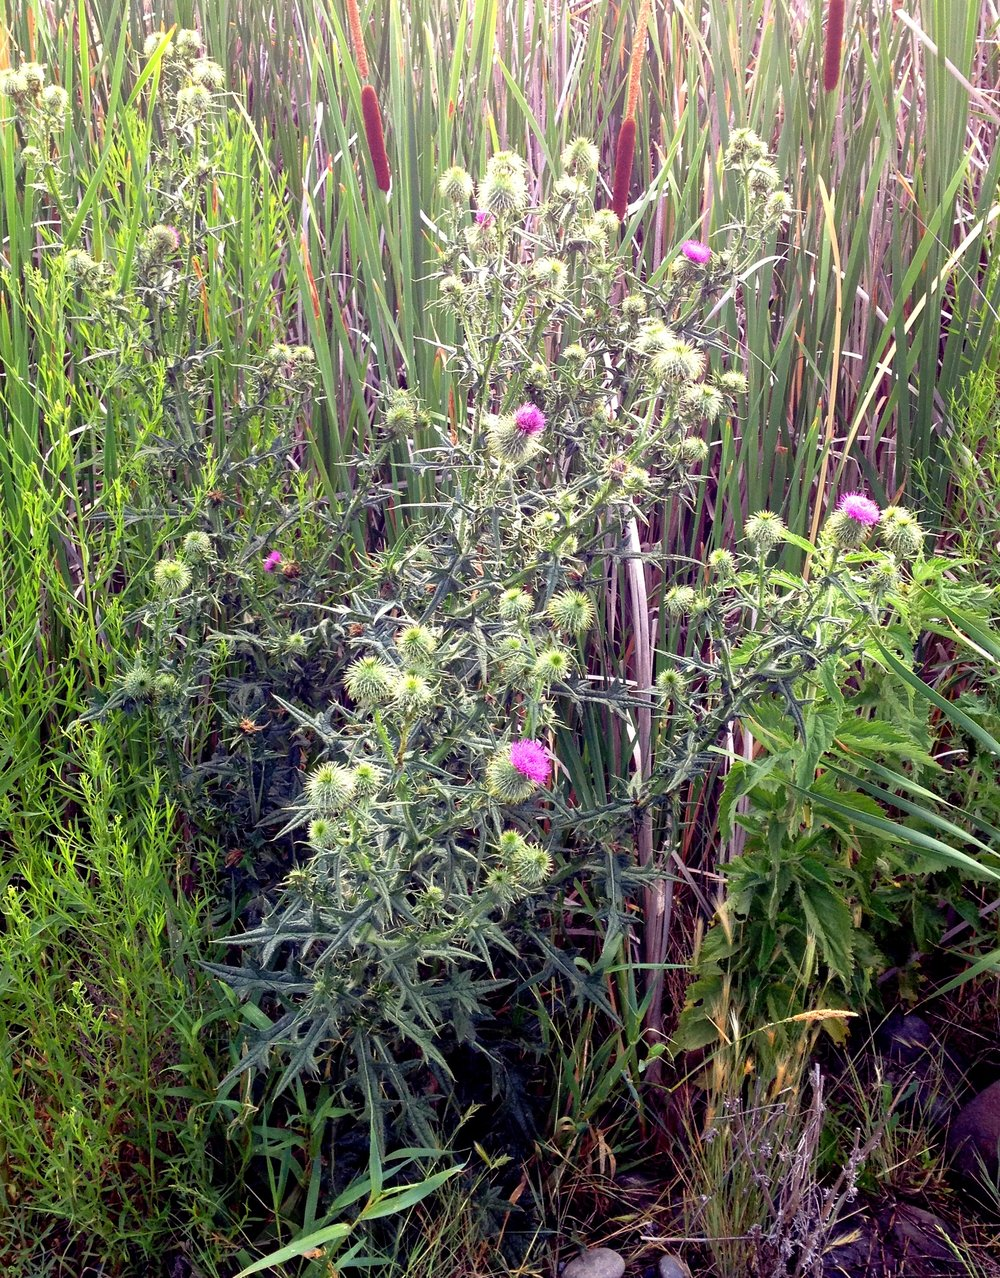 A mature bull thistle plant. Bull thistle is usually found growing in disturbed sites; such as recently logged areas and overgrazed pastures.